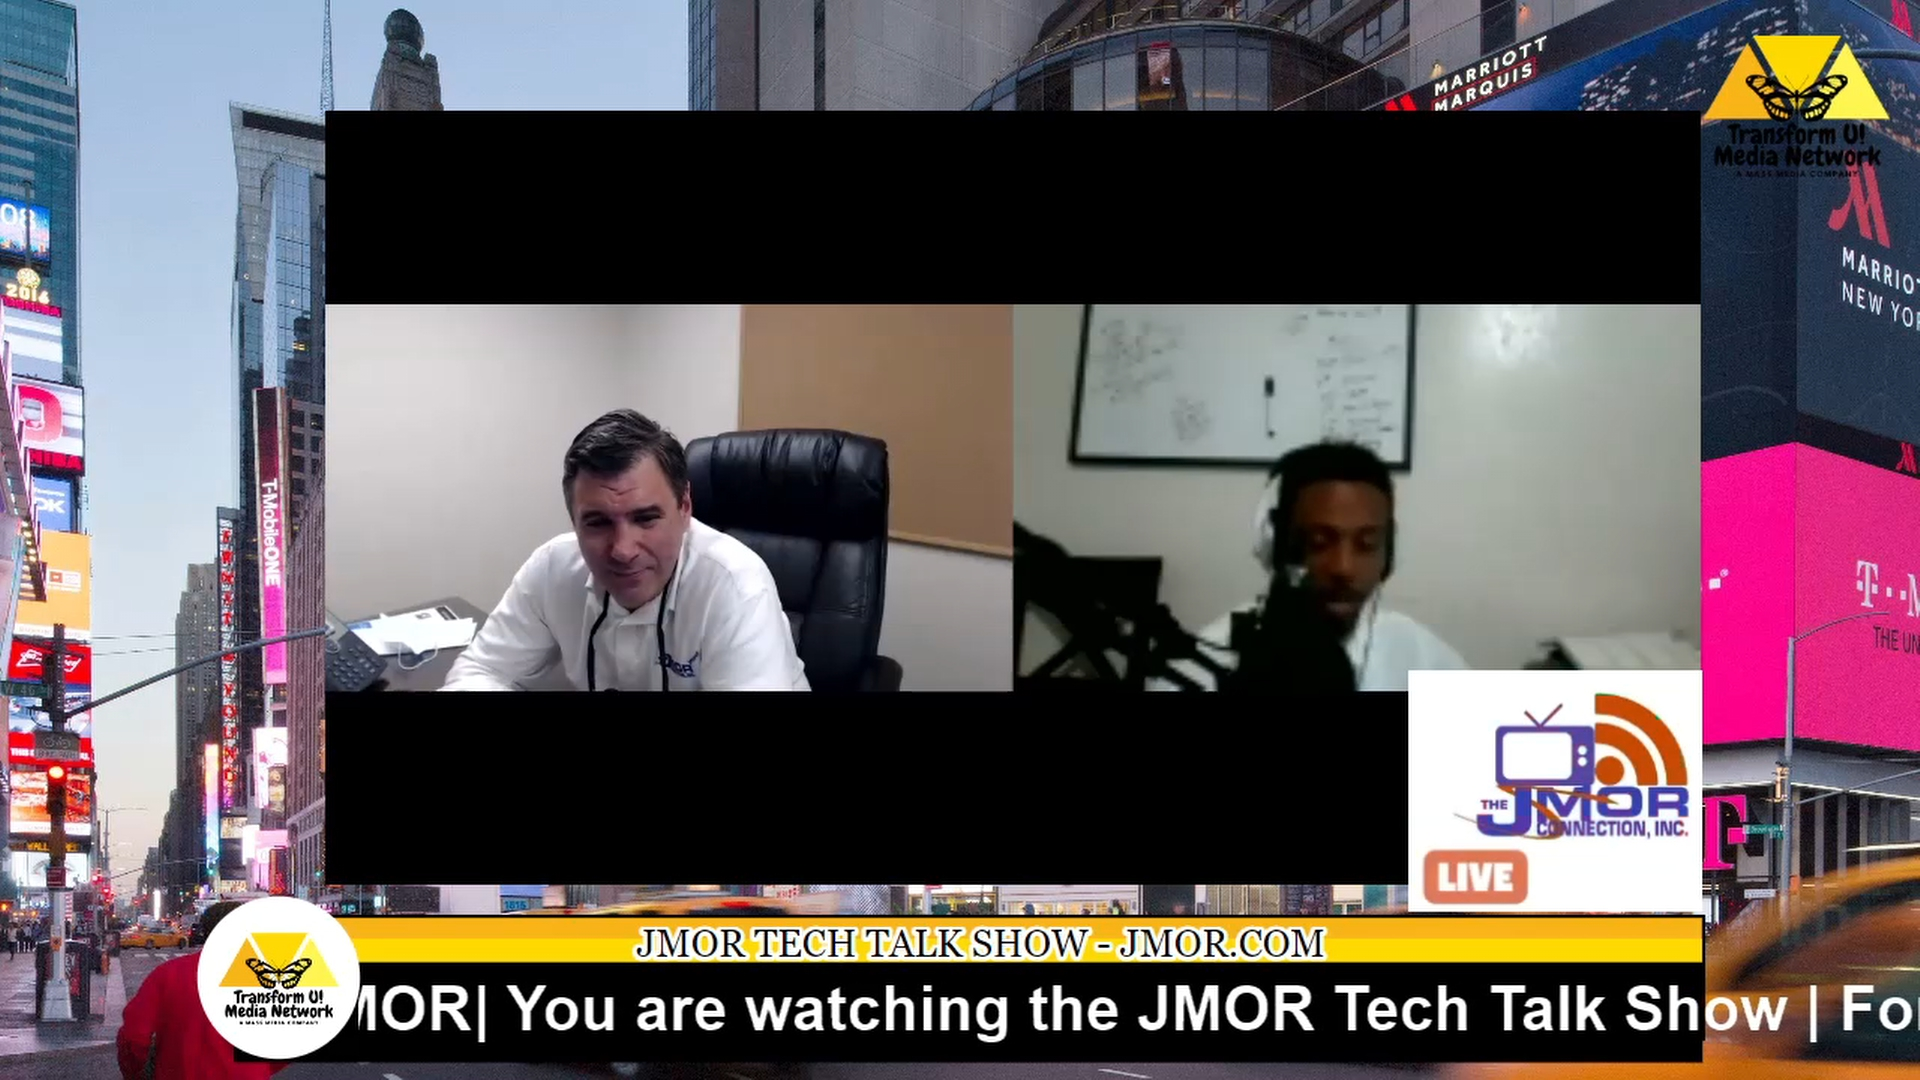 JMOR Tech Talk Show 2020E13:  Joe Bidden's App exposes access to millions of voter records